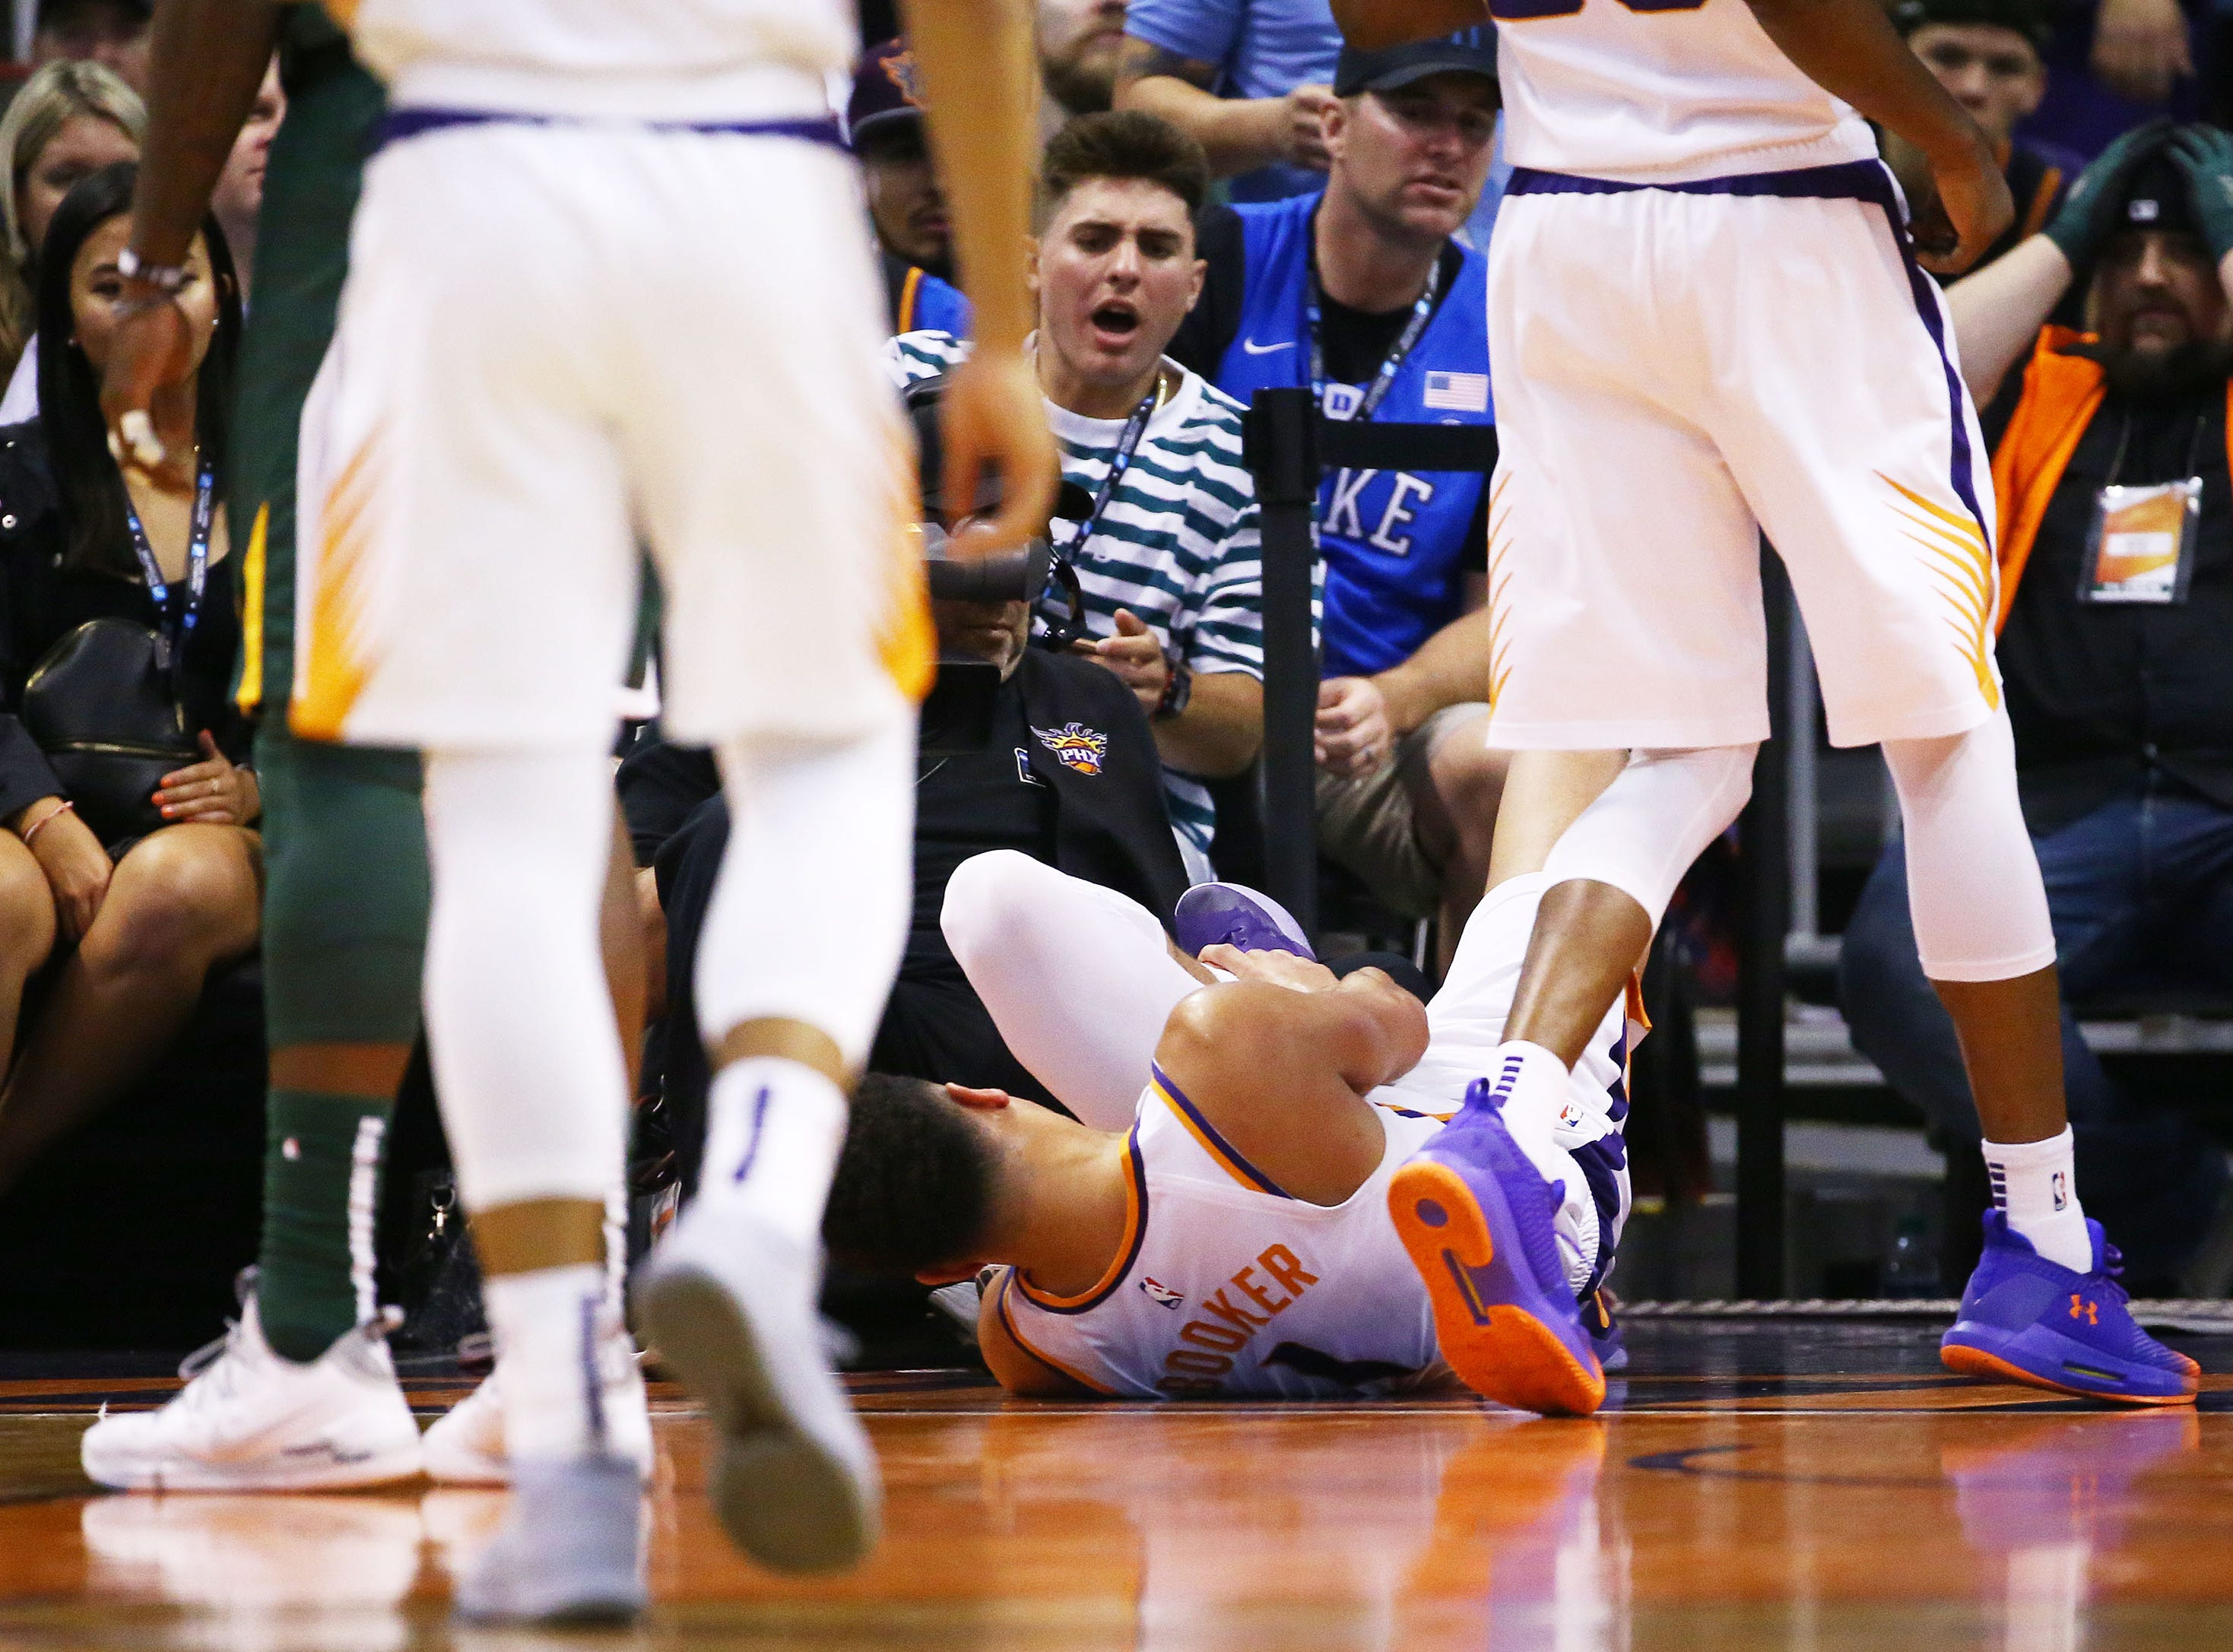 Phoenix Suns guard Devin Booker (1) lays on the court after rolling his left ankle against the Utah Jazz in the first half on Apr. 3, 2019 at Talking Stick Resort Arena in Phoenix, Ariz. Devin Booker helped off the court to the locker room.